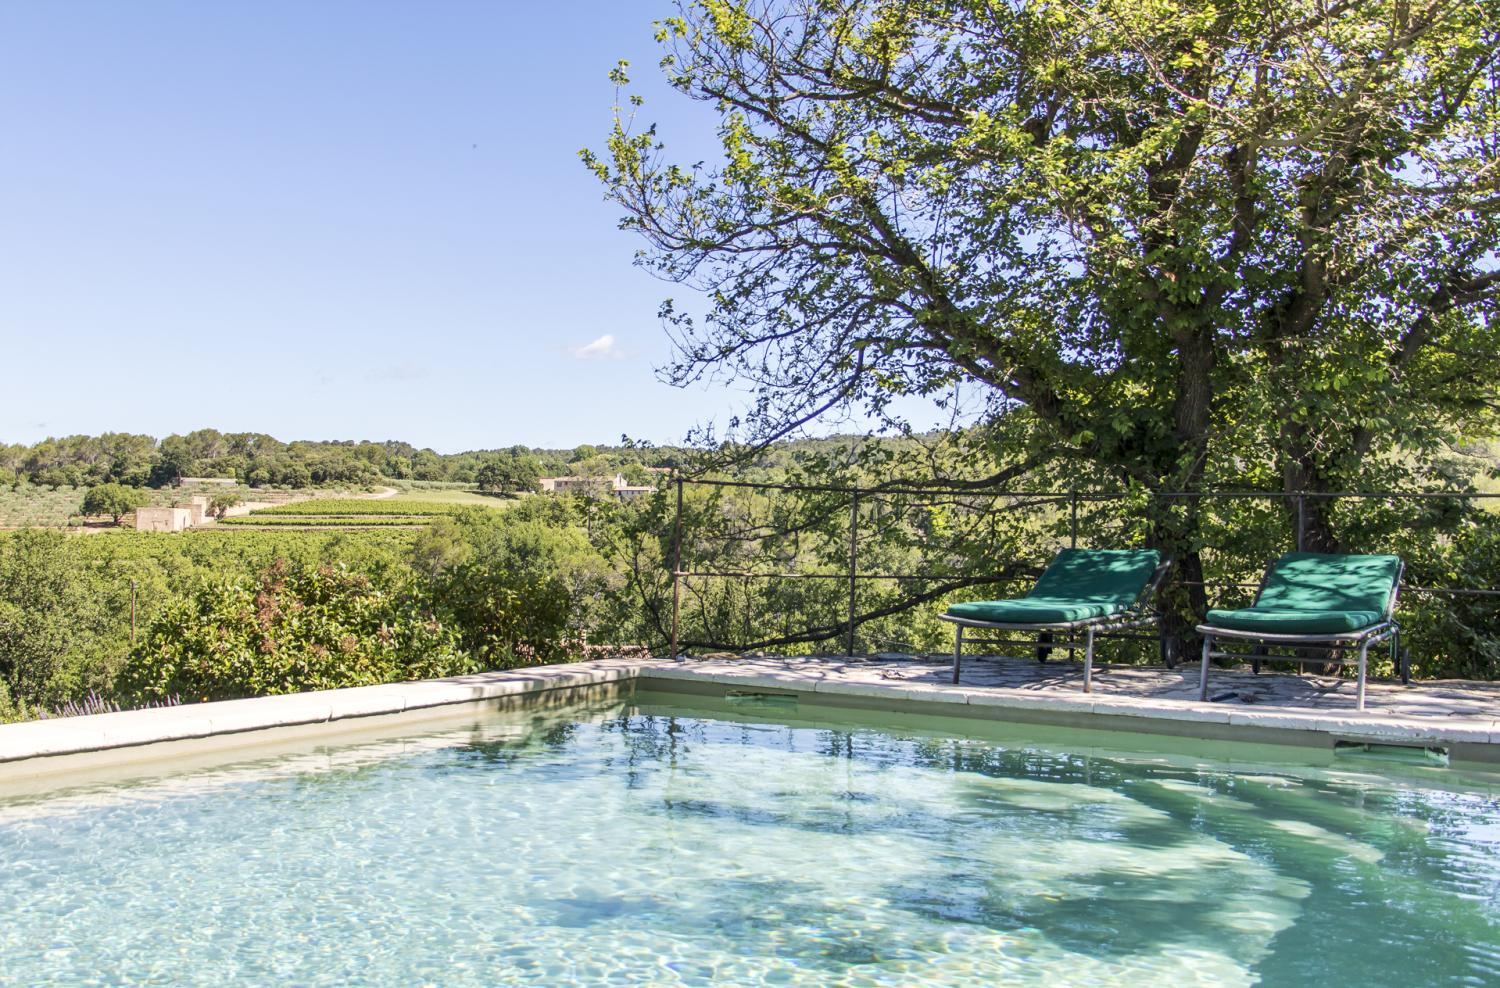 Private pool with a view, Bastide Du Charme, Provence, Lorgues.